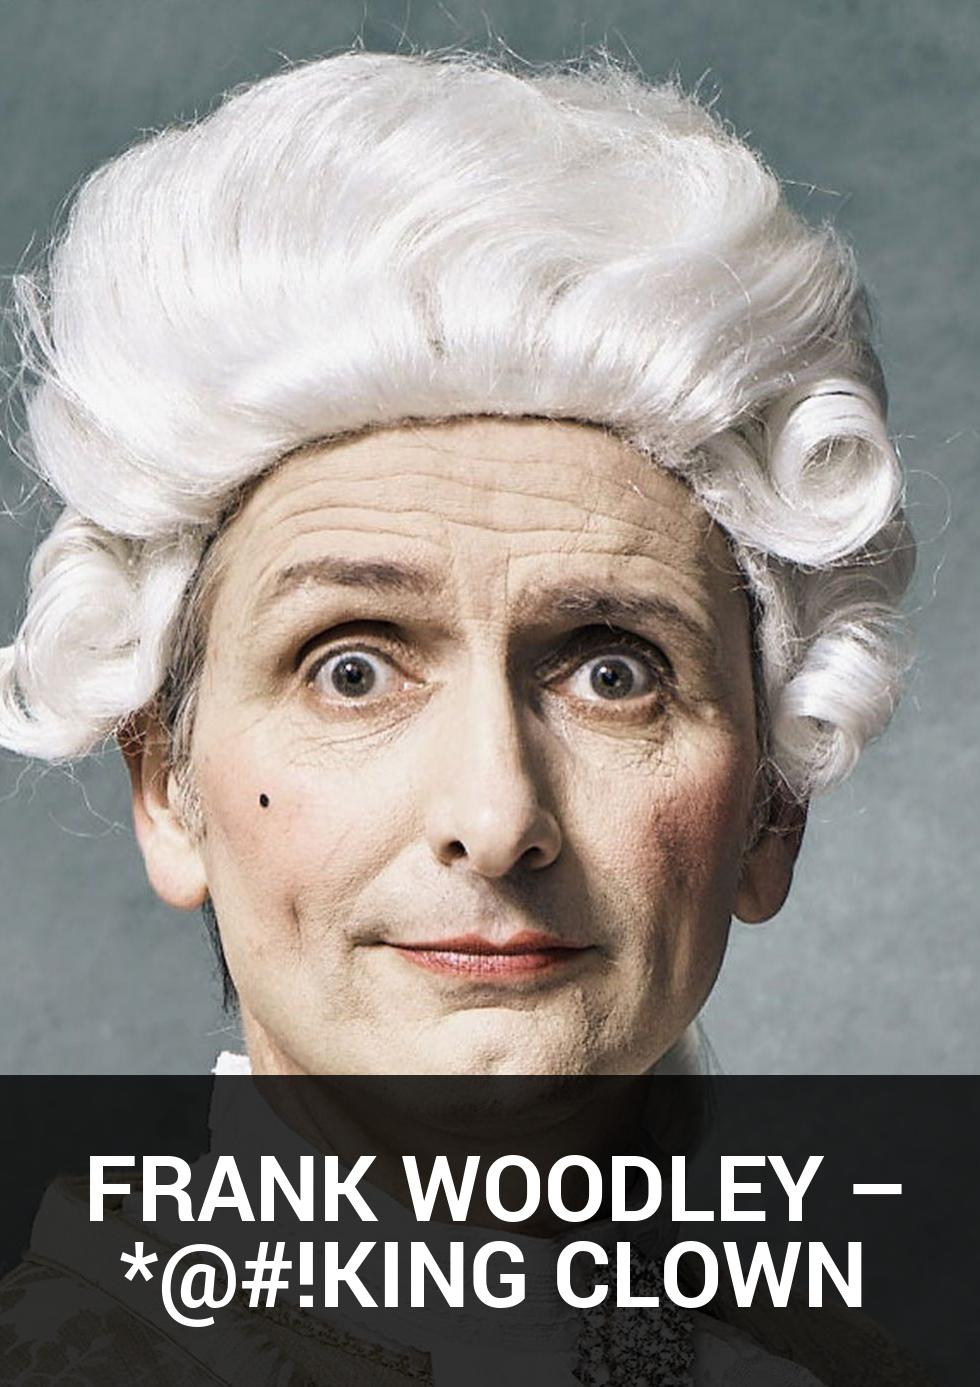 FRANK WOODLEY – *@#!KING CLOWN at Canberra Theatre Centre